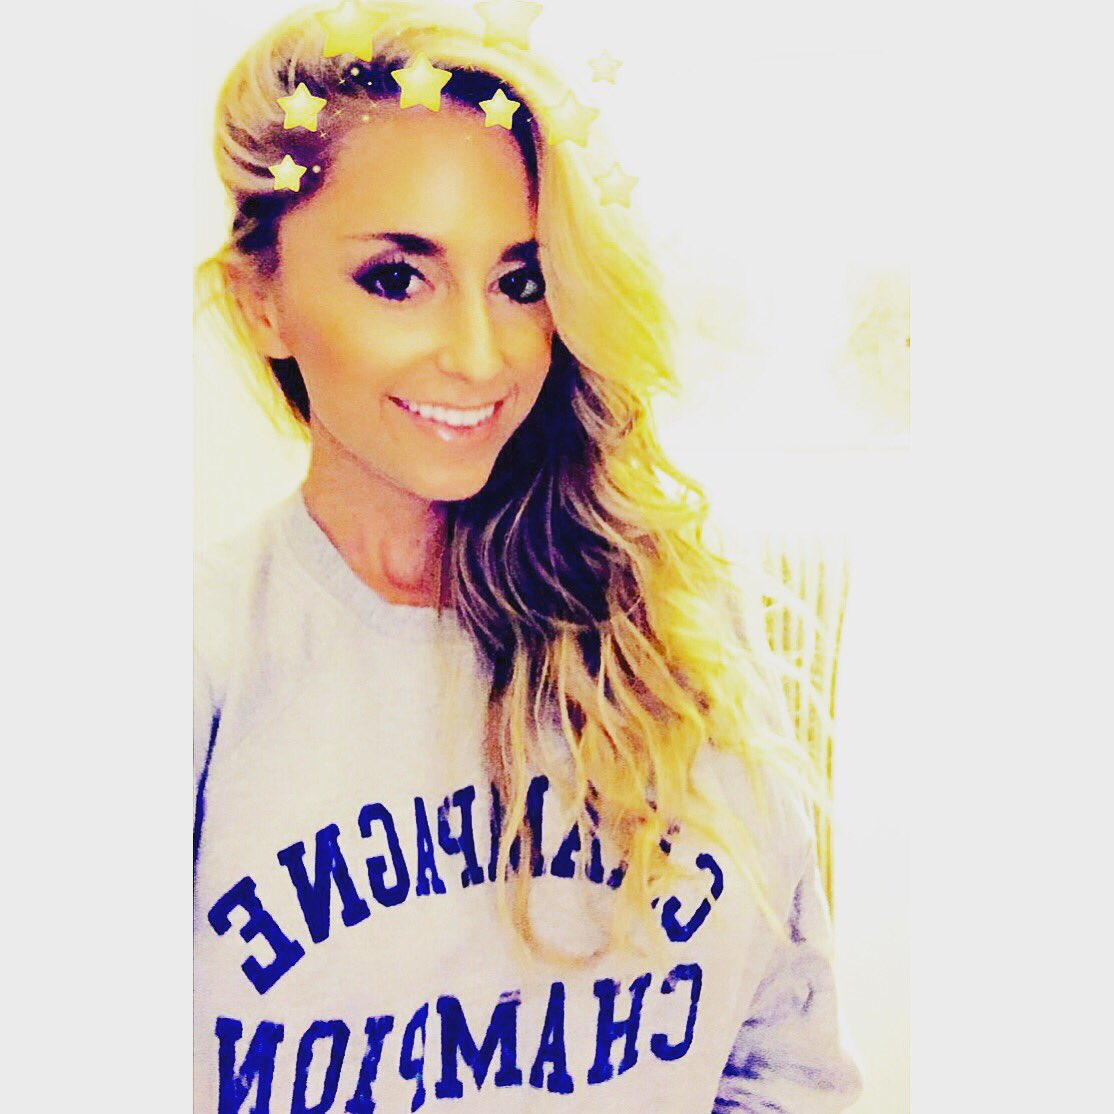 Jen Howell On Twitter I M Happy To Share That I M The Proud New Owner Of The Champagne Champion Sweatshirt Thanks Kate Chastain Belowdeck Bravotv Https T Co Qelylhu6fo [ 1114 x 1114 Pixel ]